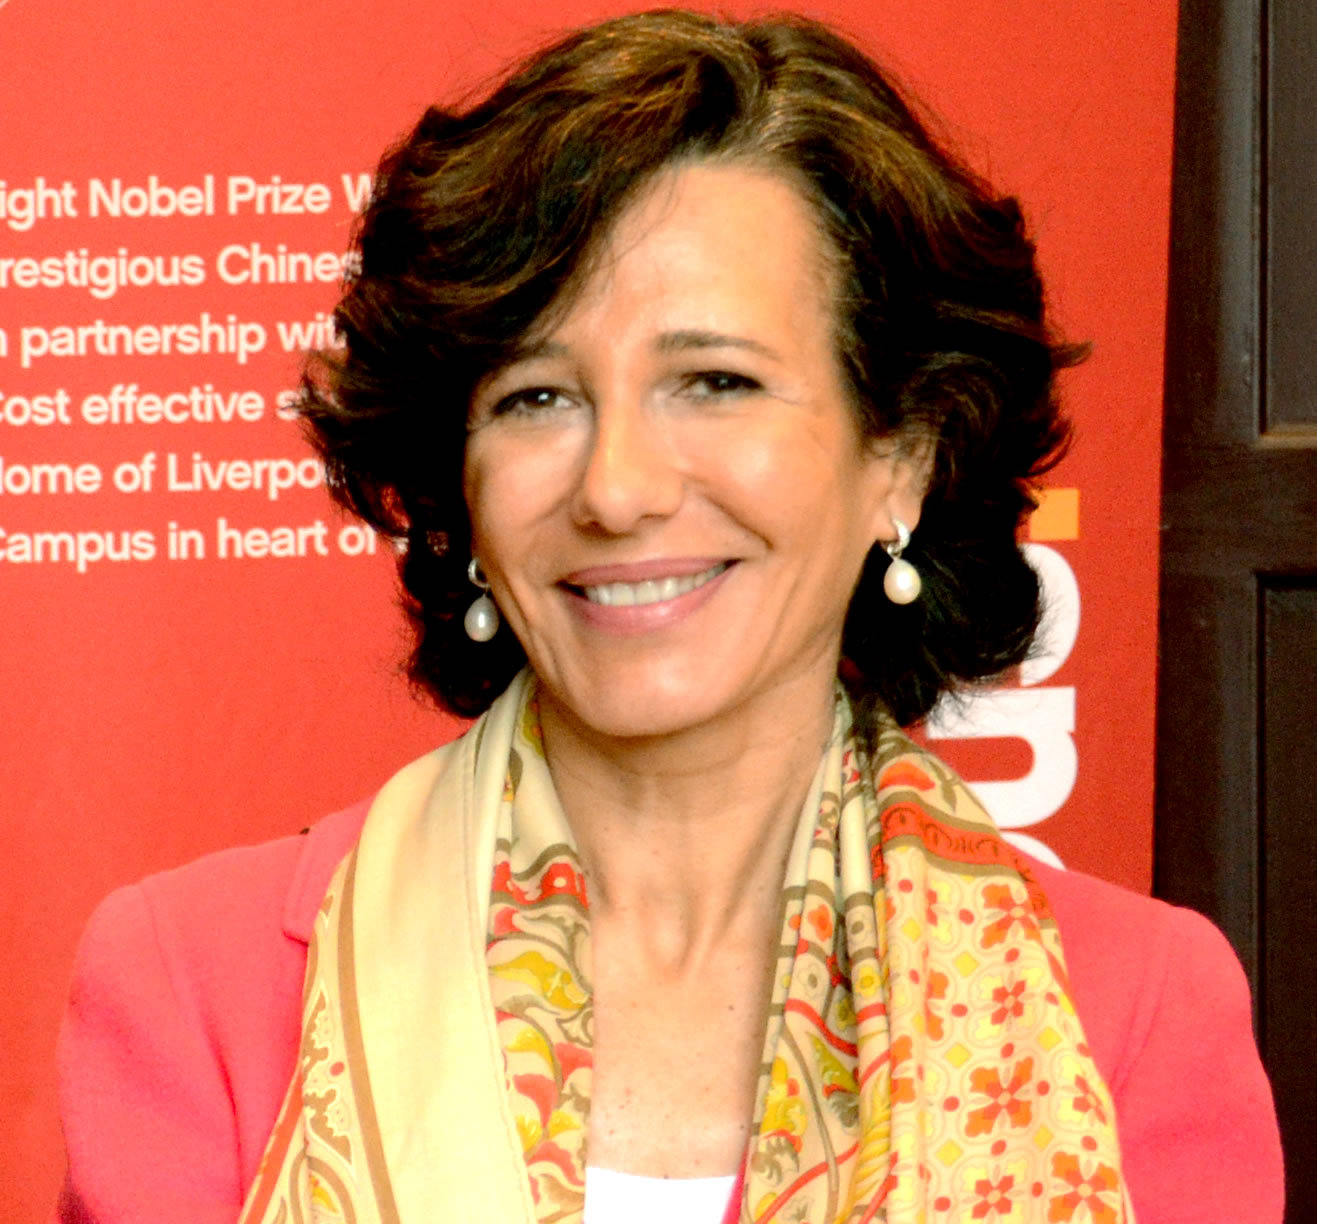 The Board of Directors of The Coca-Cola Company today elected Ana Botín as a Director of the Company, effective immediately. (Photo: Business Wire)